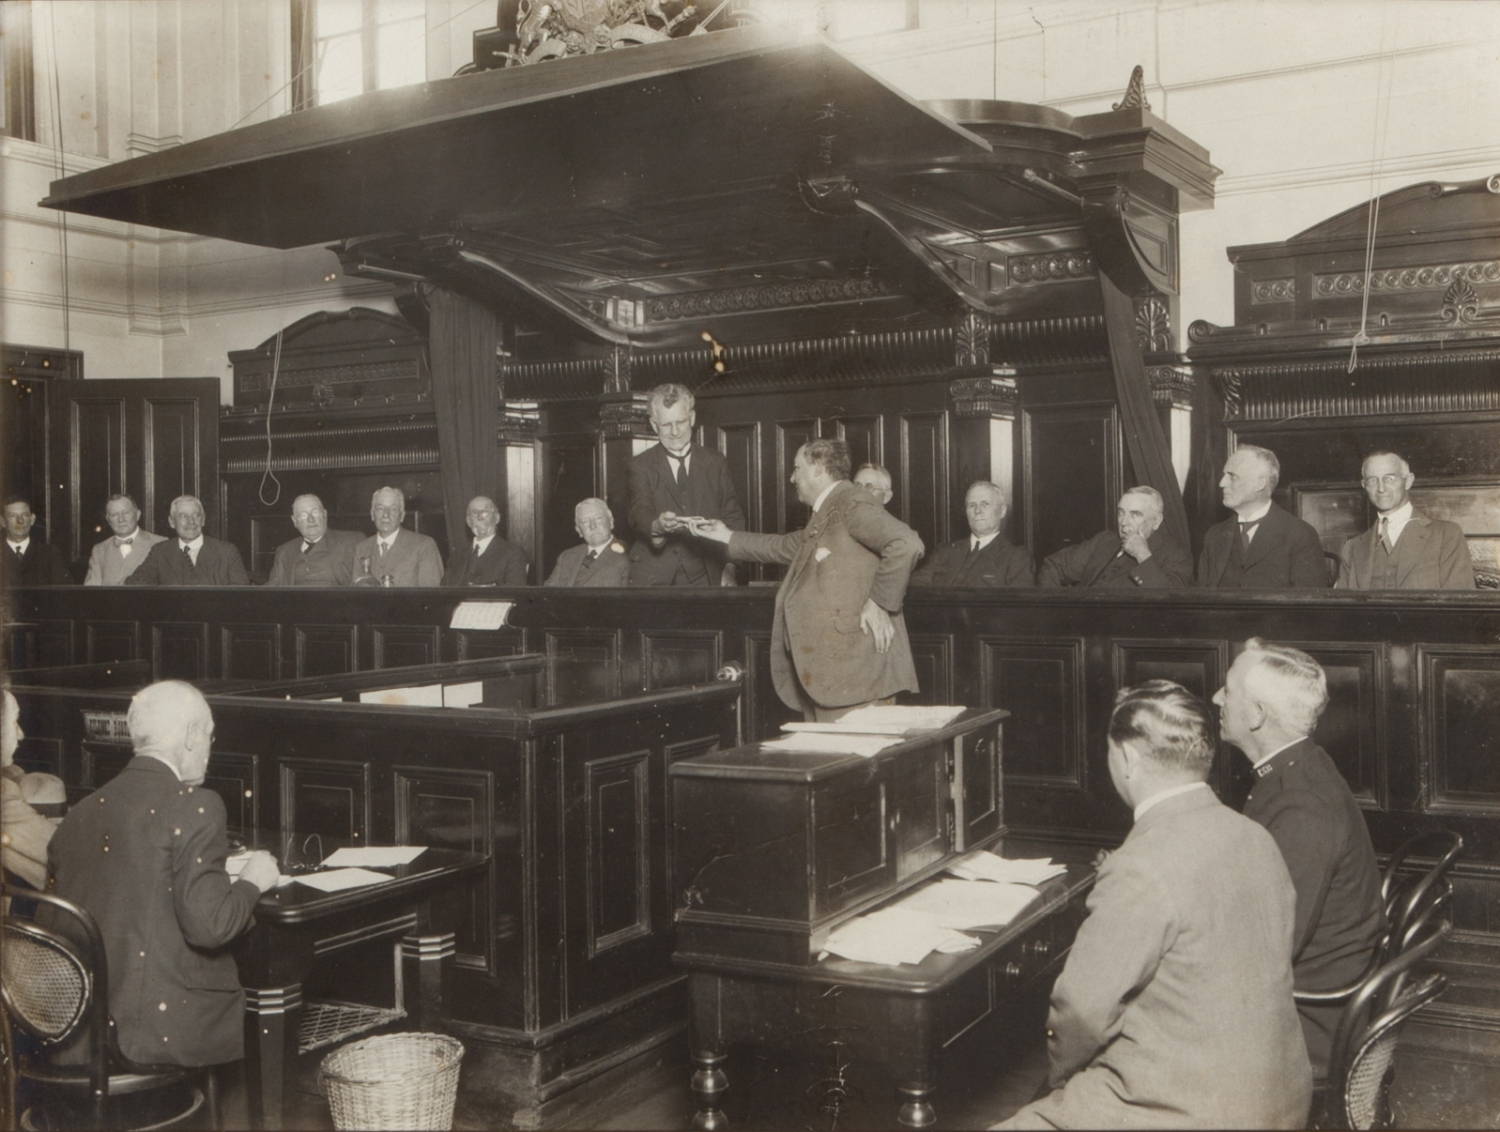 Black and white interior shot of wooden panelled courtroom filled with people.